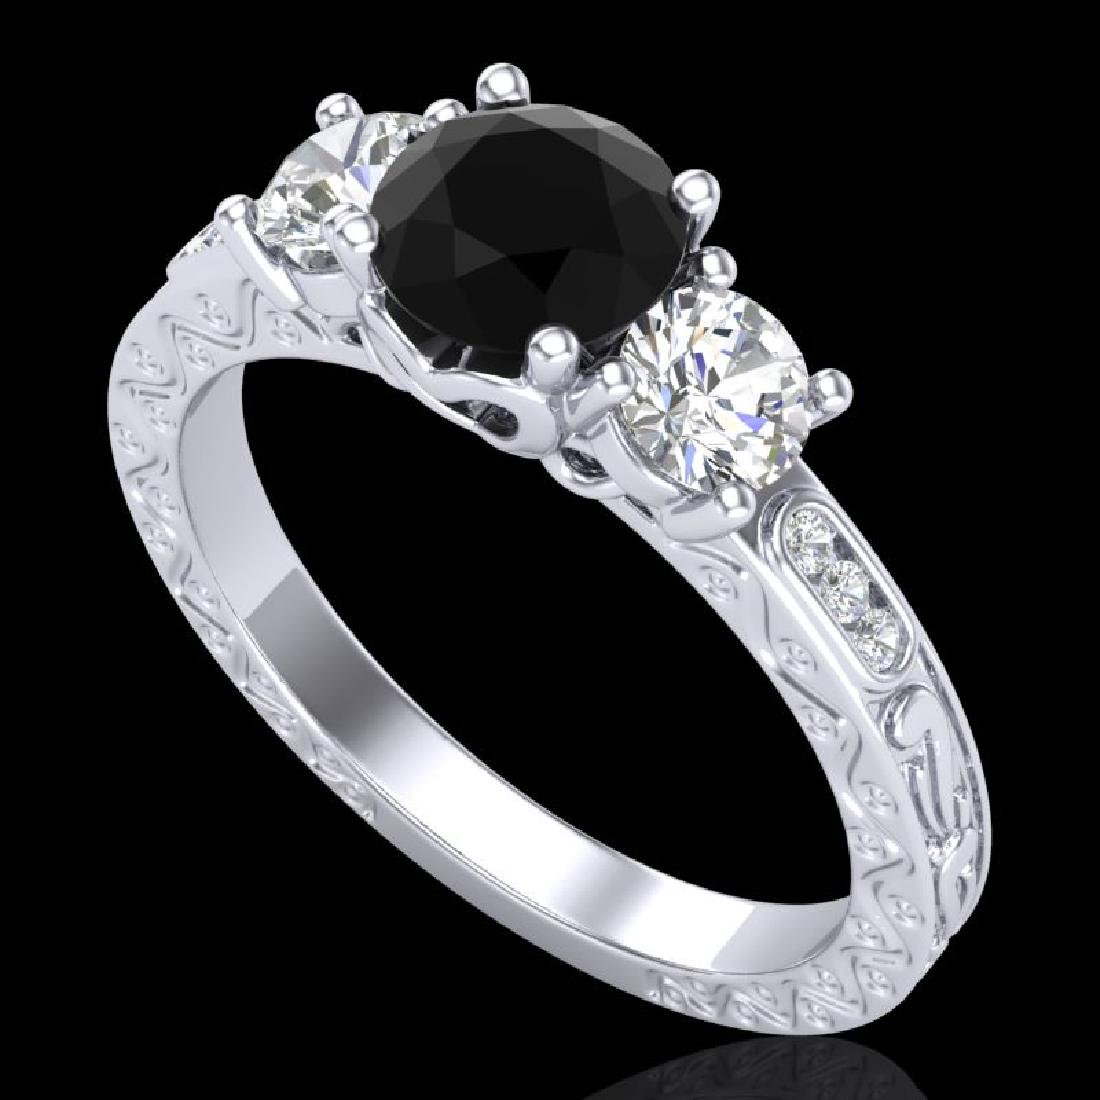 1.41 CTW Fancy Black Diamond Solitaire Art Deco 3 Stone